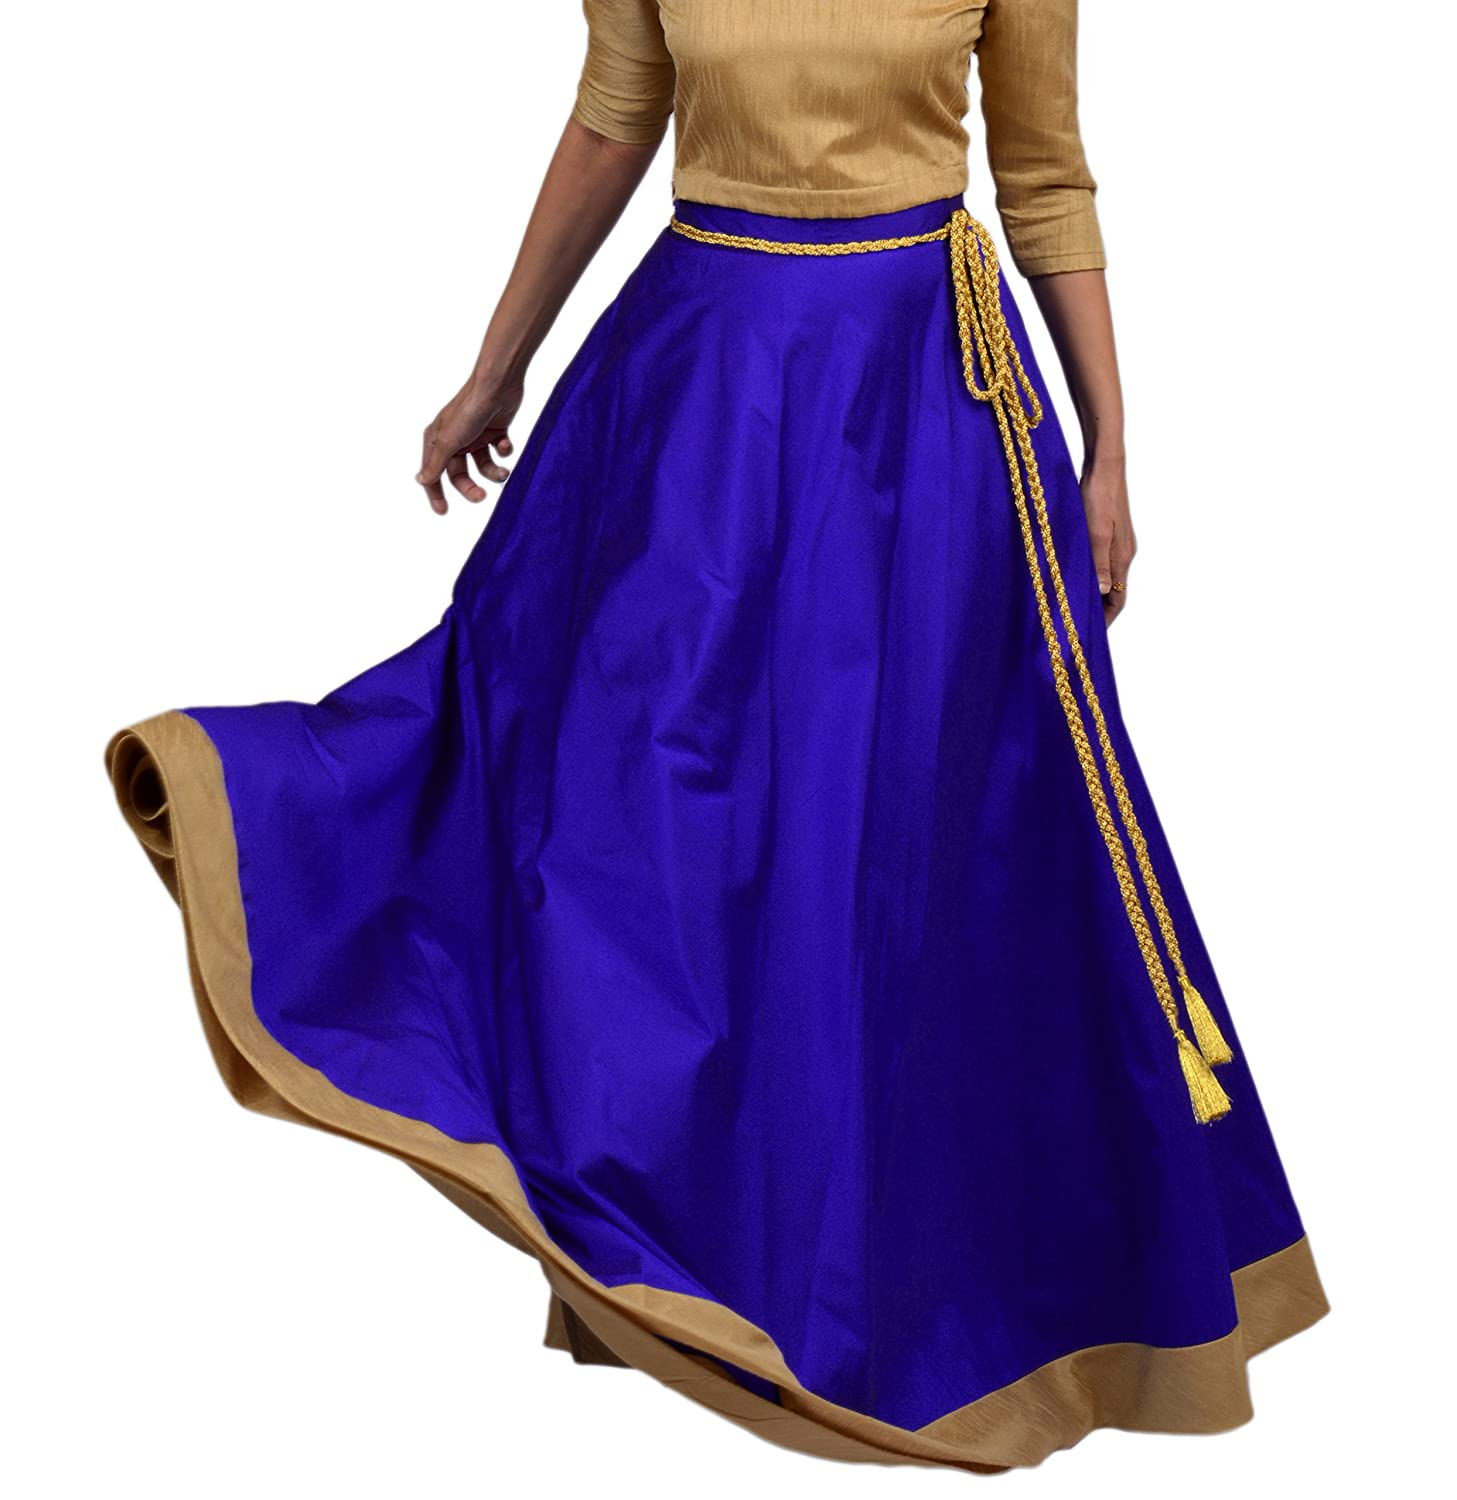 0de894f974 Blue Colored Taffeta Silk Wrap Around Skirt with Golden Border and Golden  Dori (String) Belt Maxi Length Full Circle Skirt; Lined; Buttonholes  present to ...